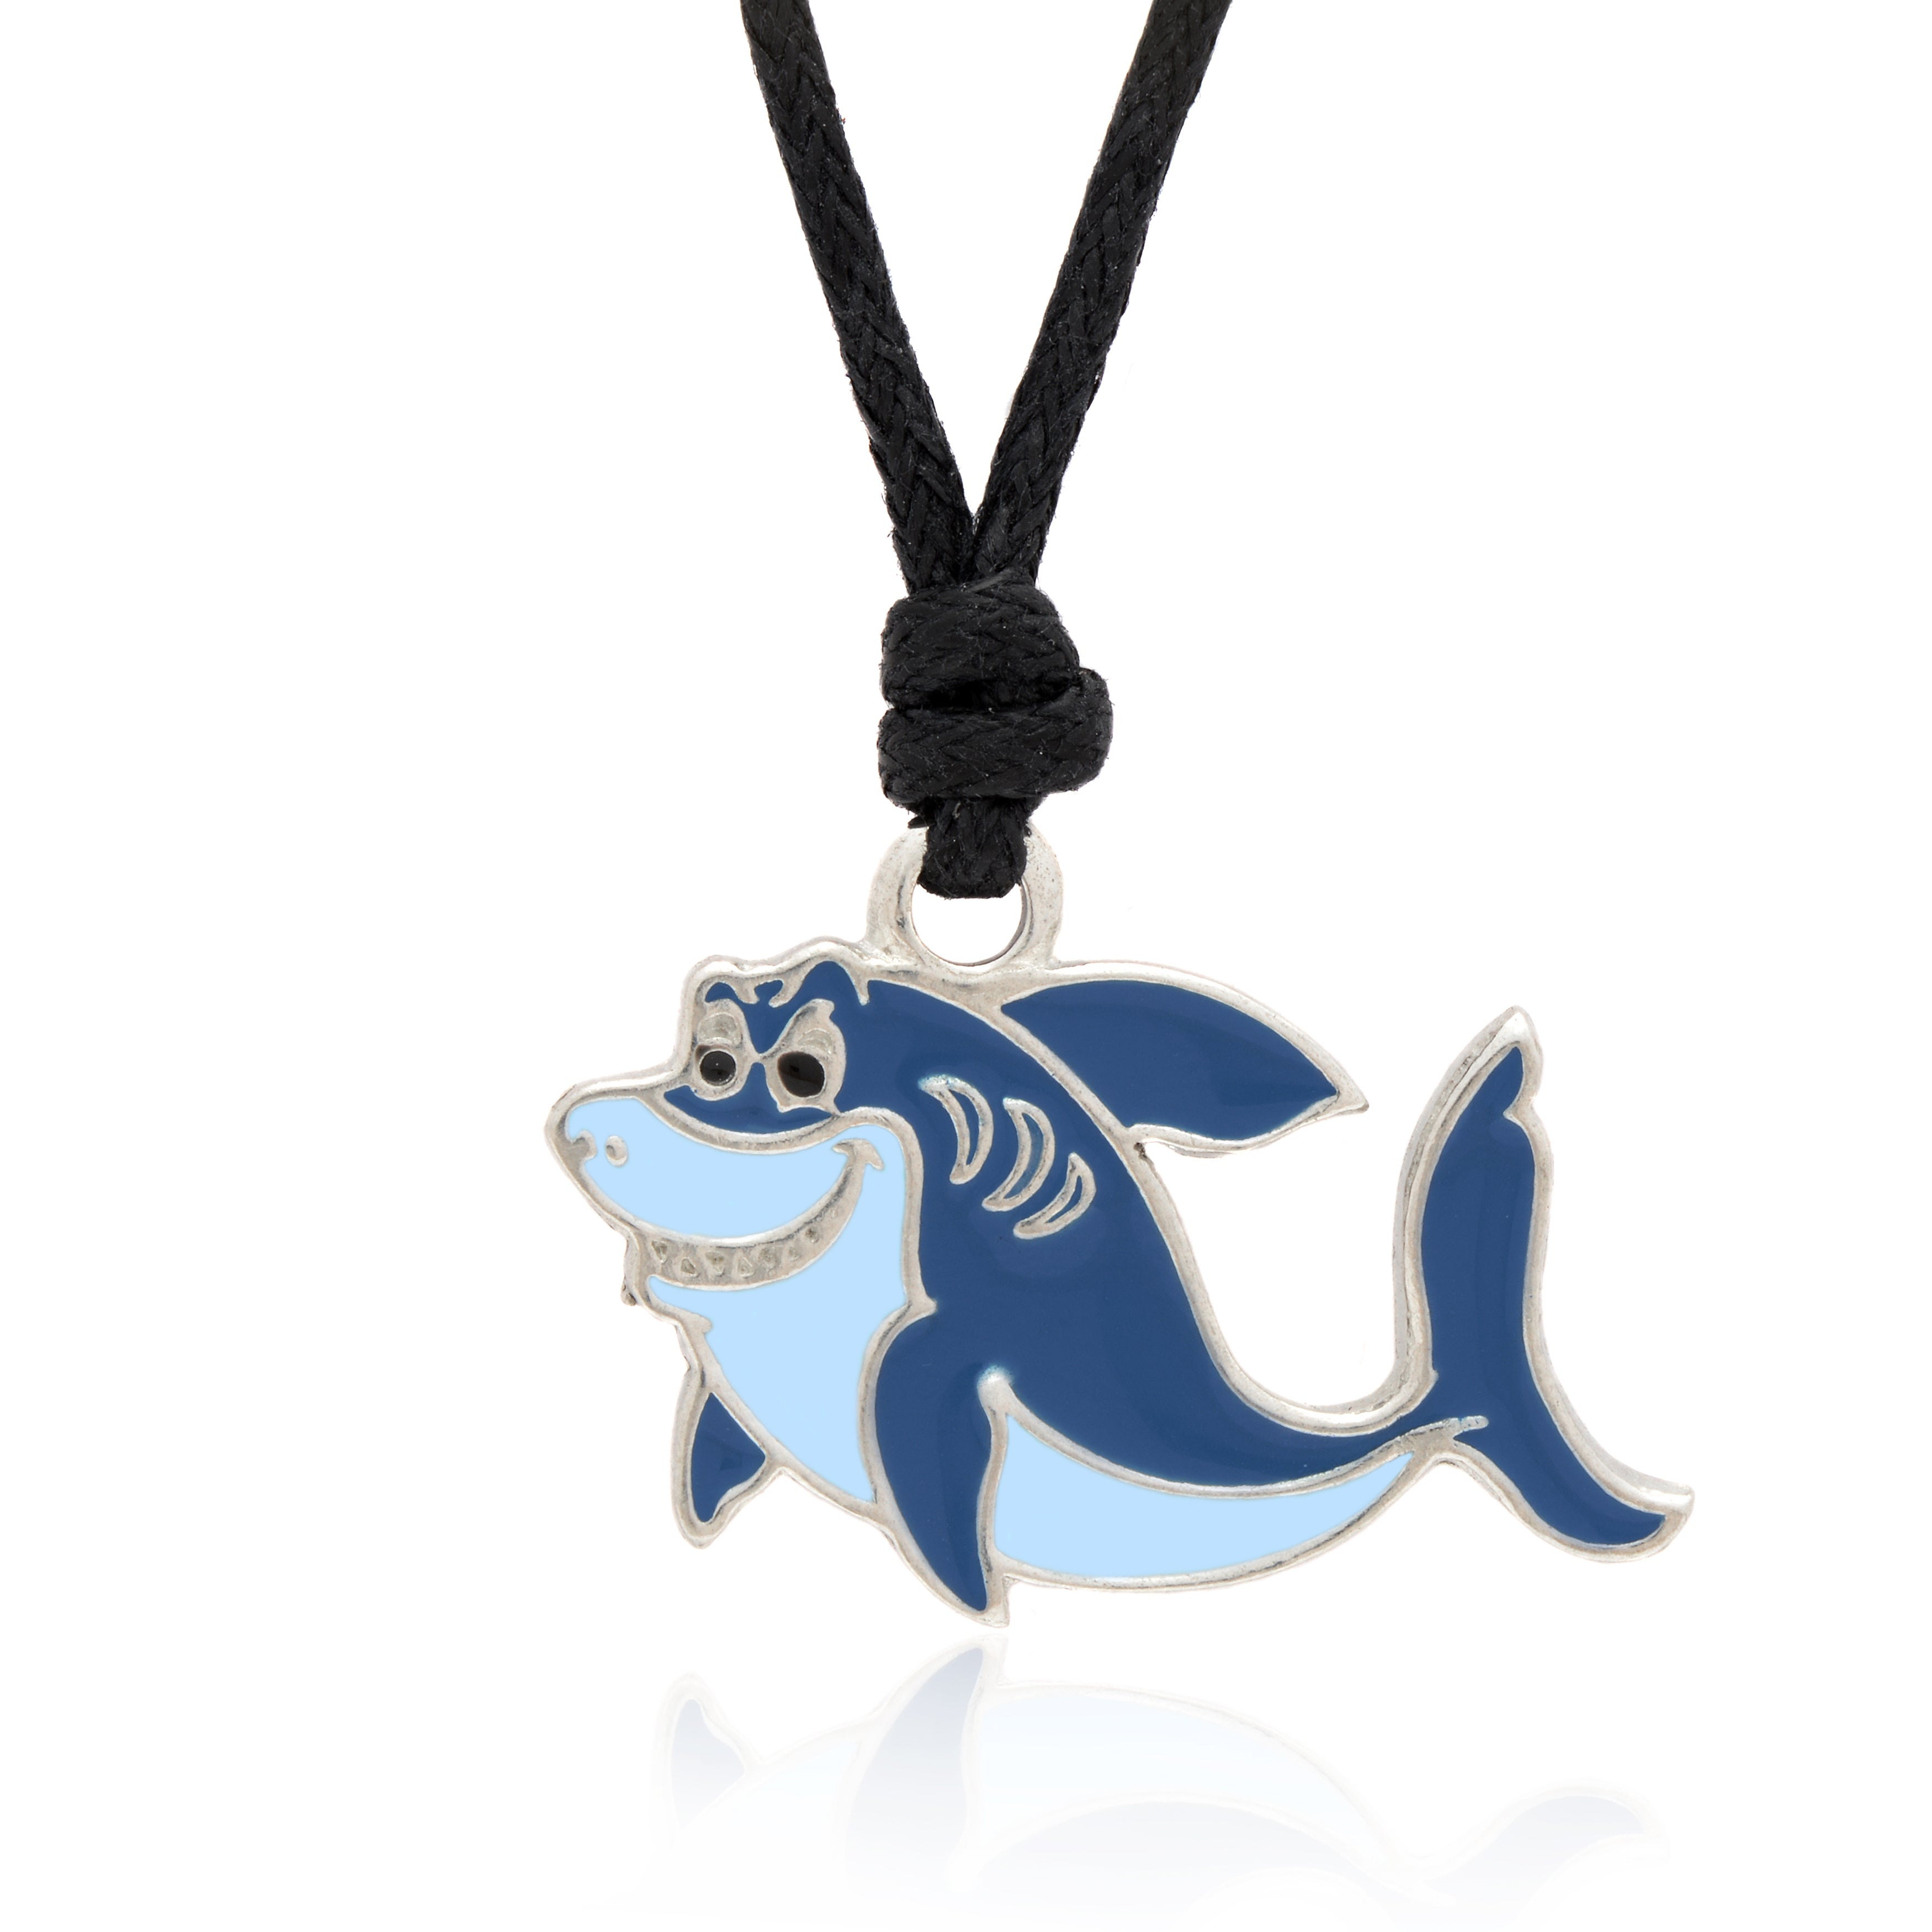 necklace pendant latest large shark my sale excited for to shop hammerhead gifts the her addition pin jewelry share on etsy